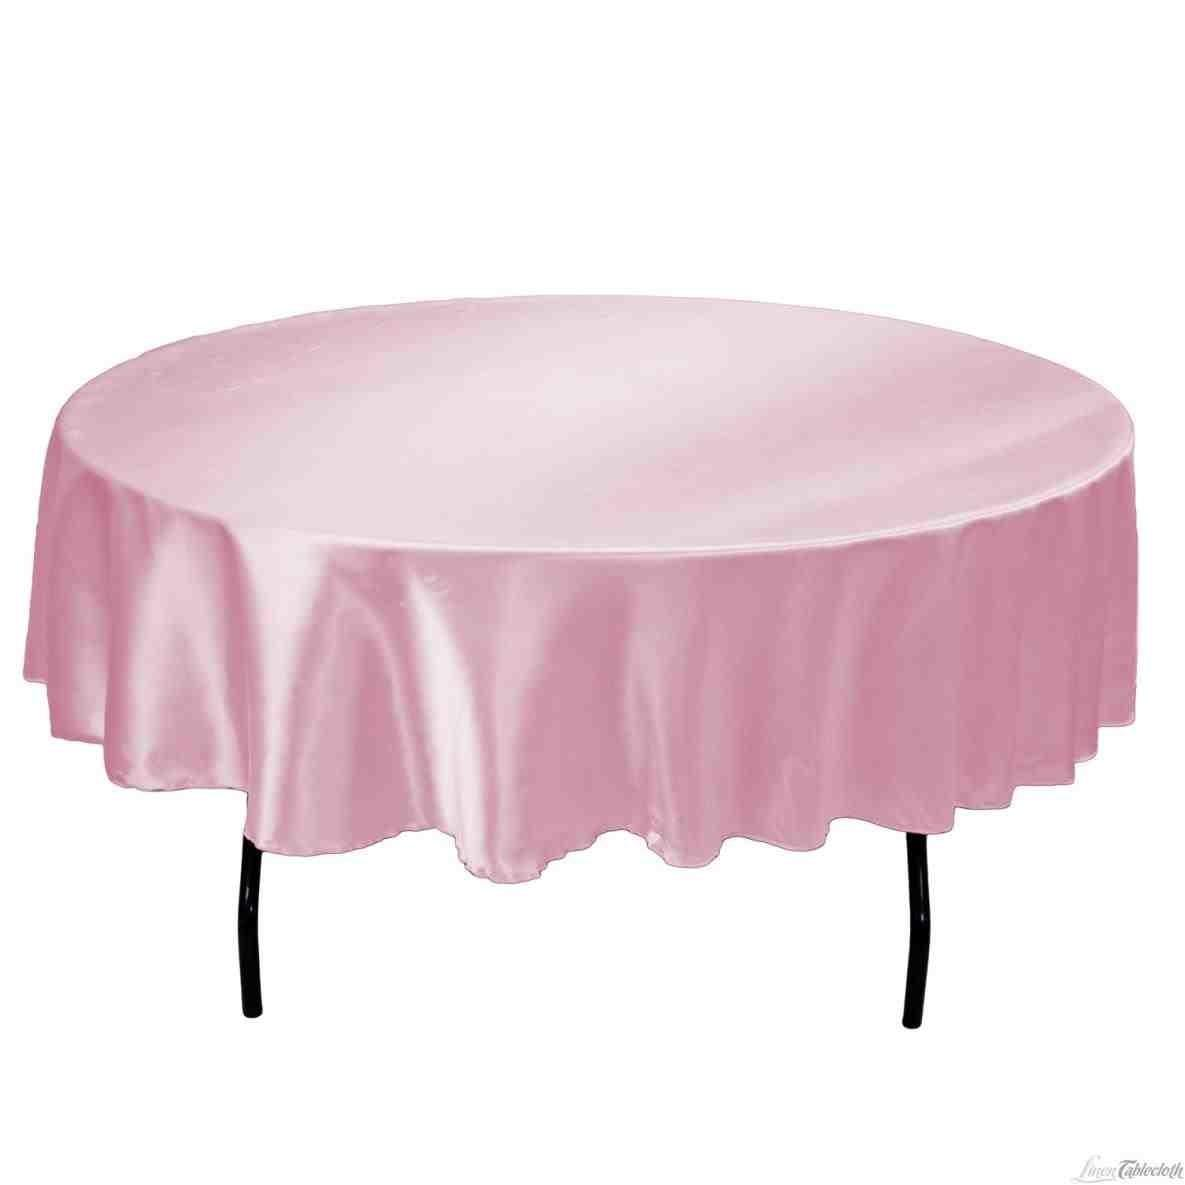 Buy Round Tablecloths Temasistemi